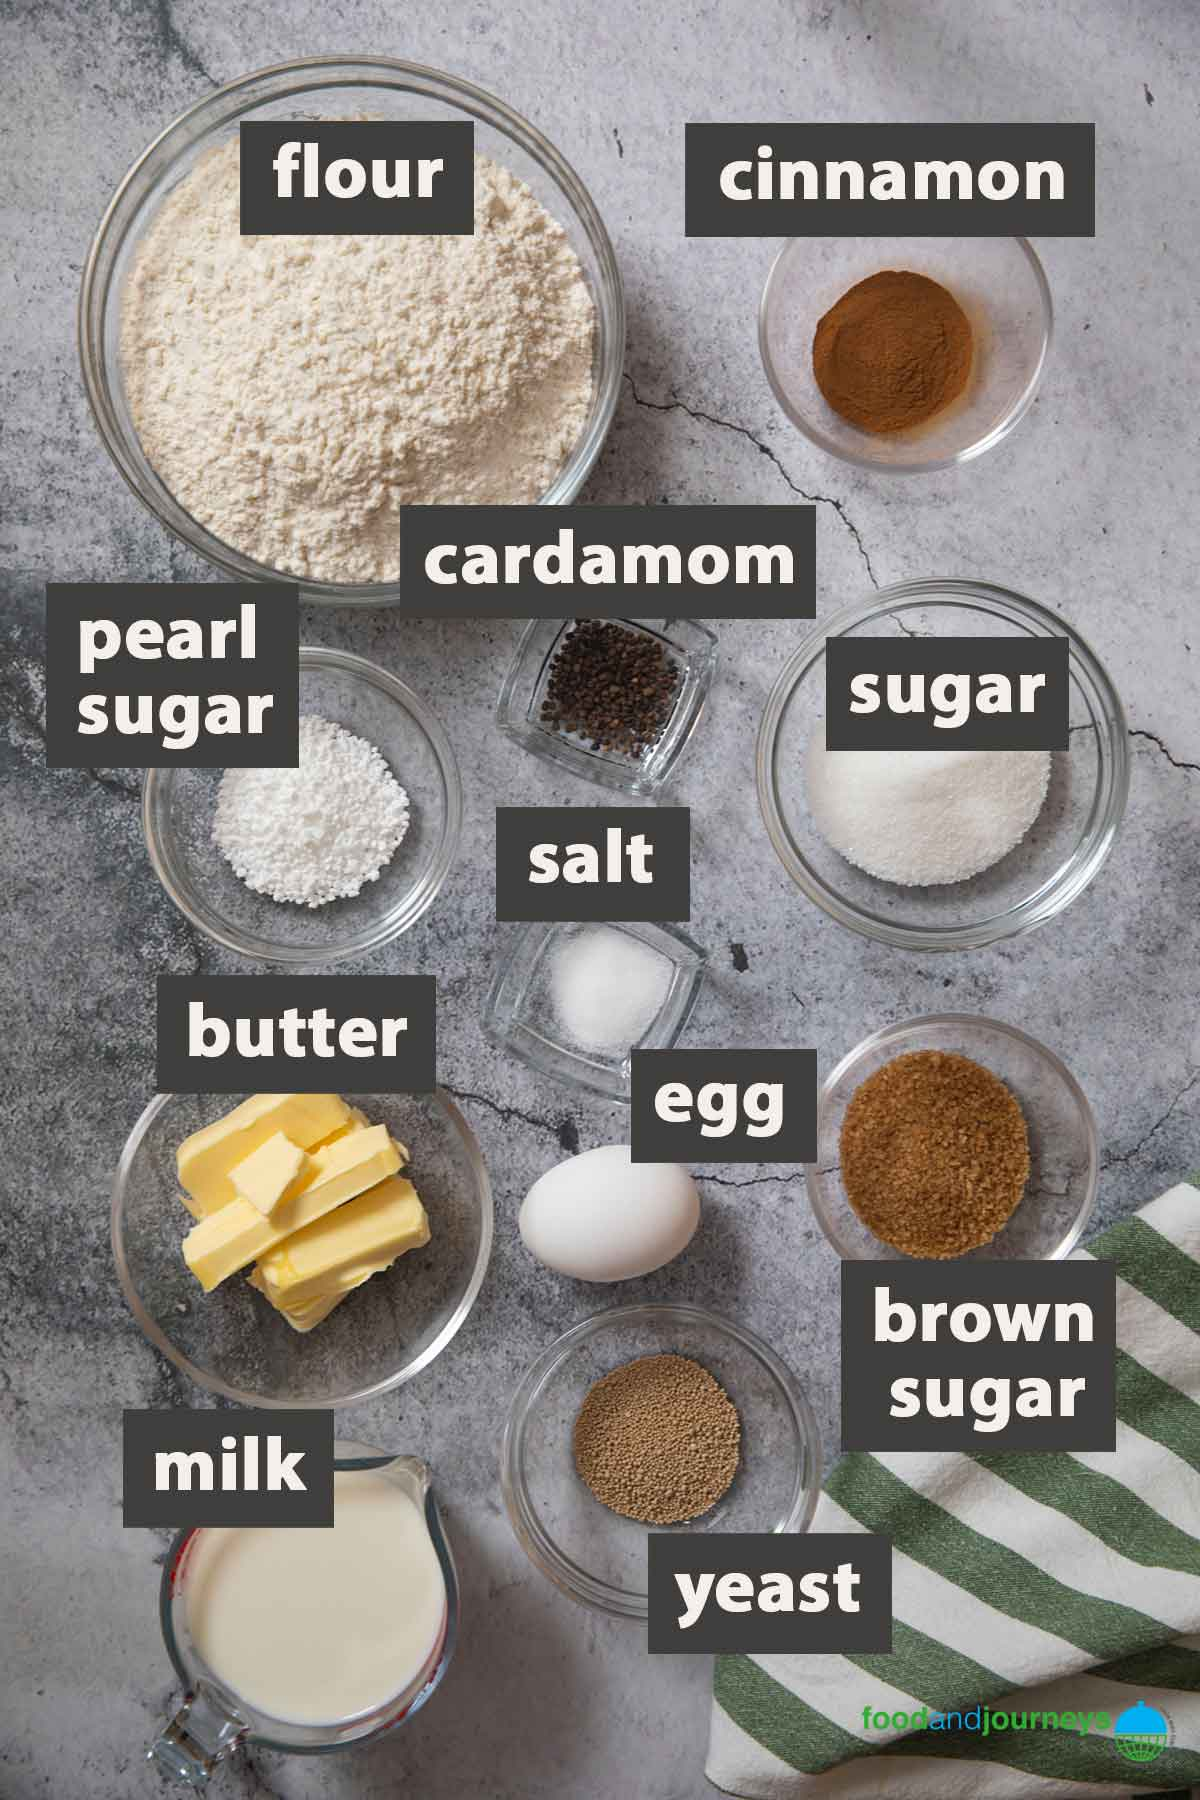 An image showing all the ingredients you need to make kanelbullar at home.